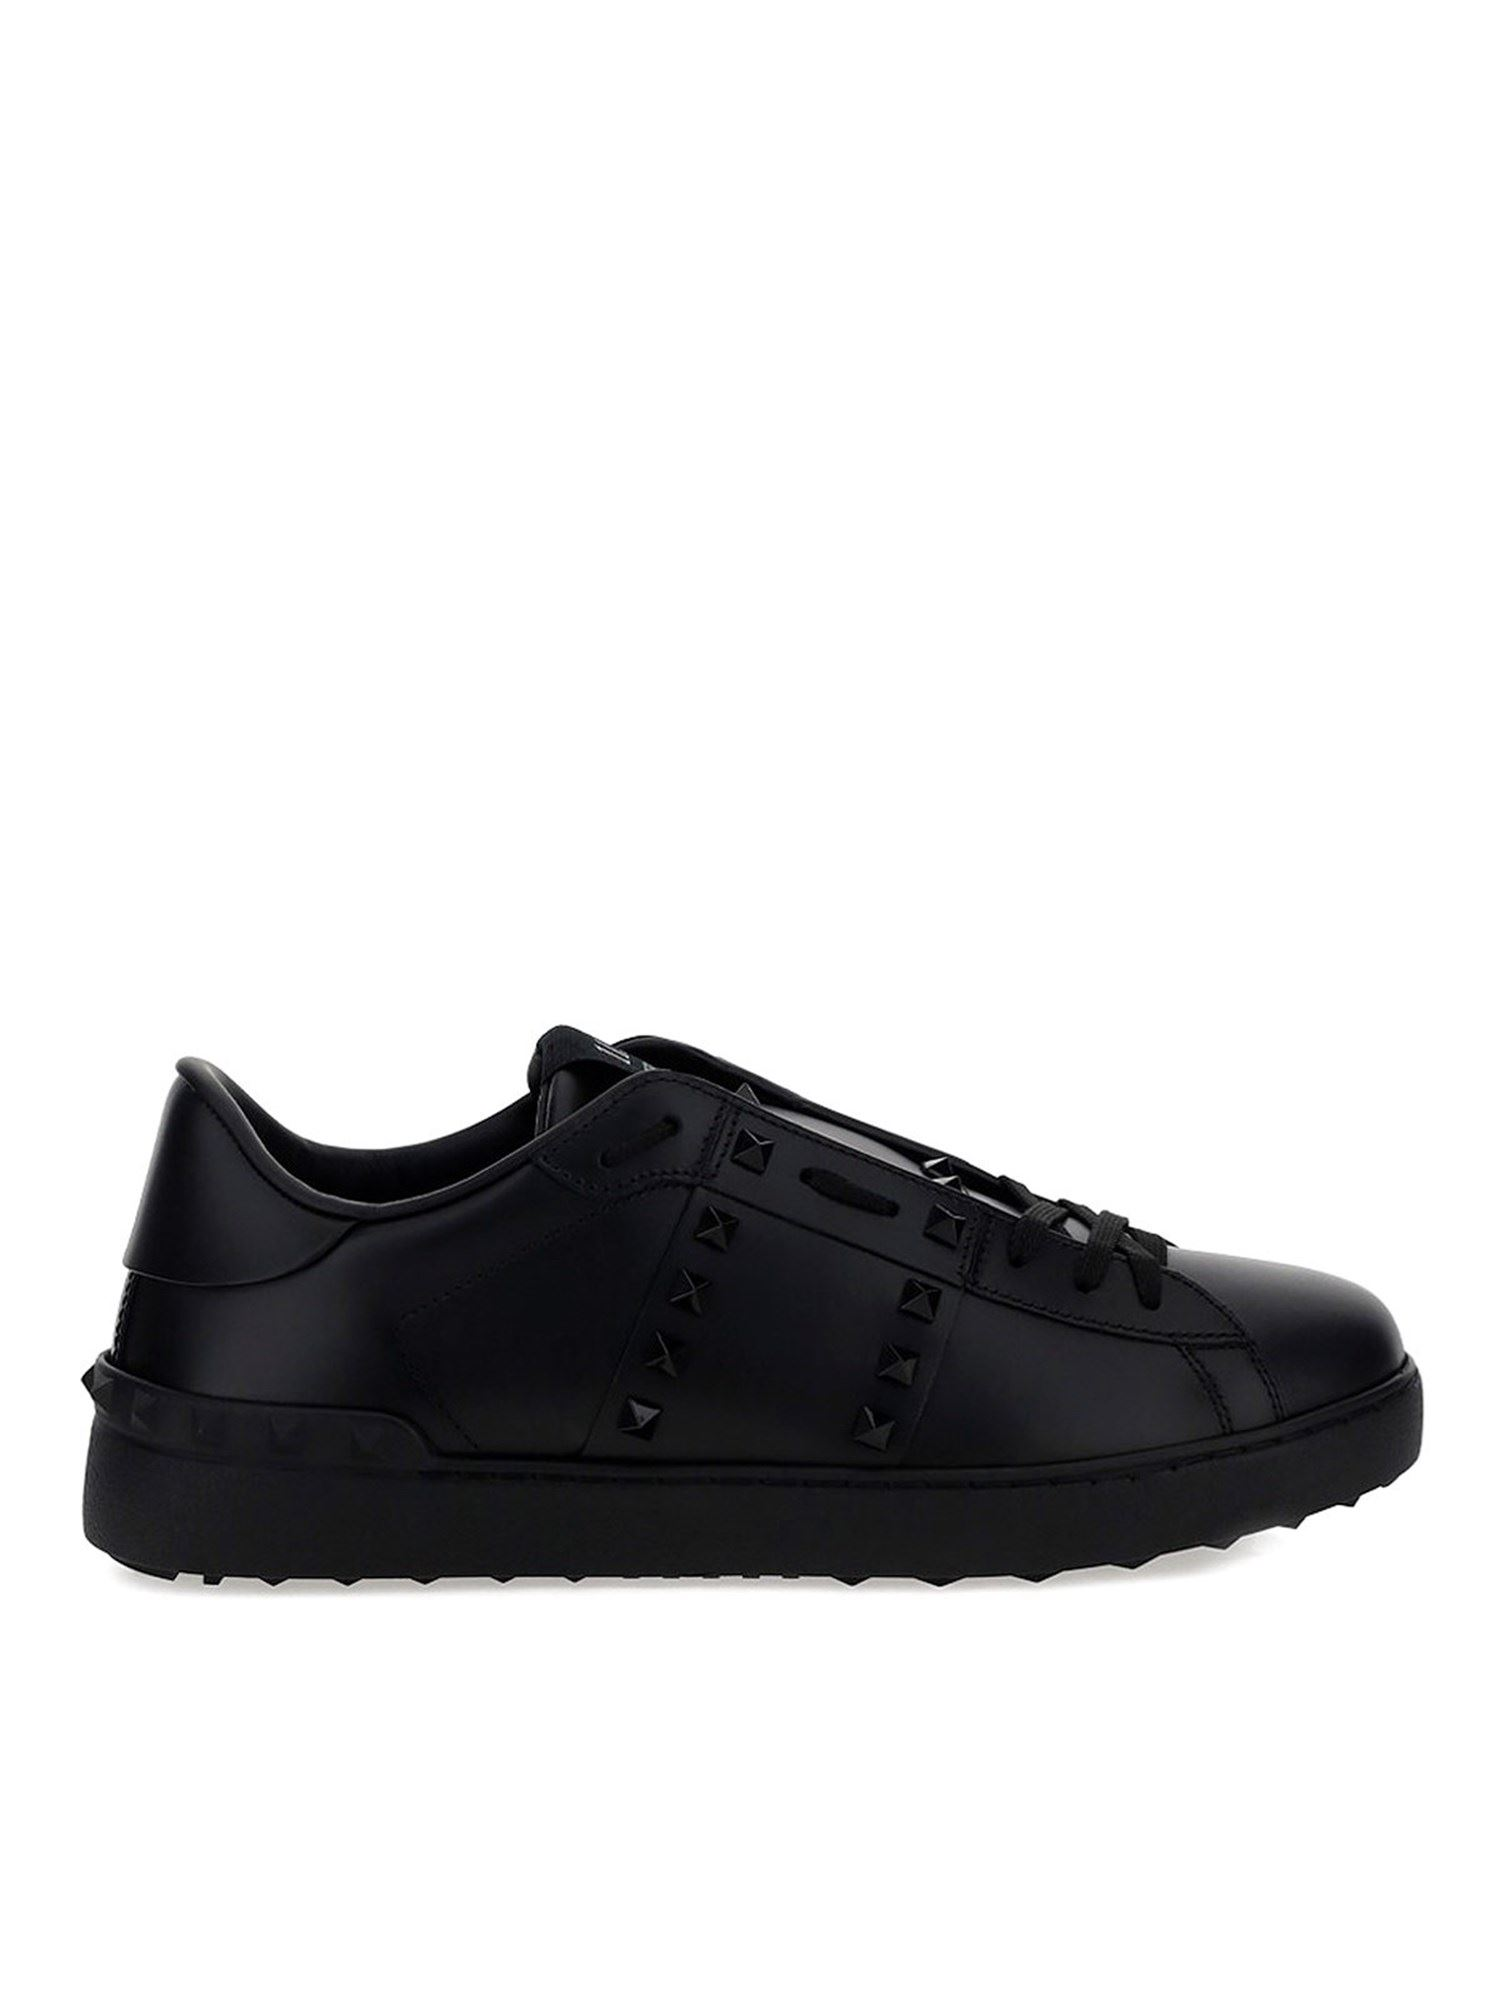 Valentino Sneakers OPEN SNEAKERS IN BLACK